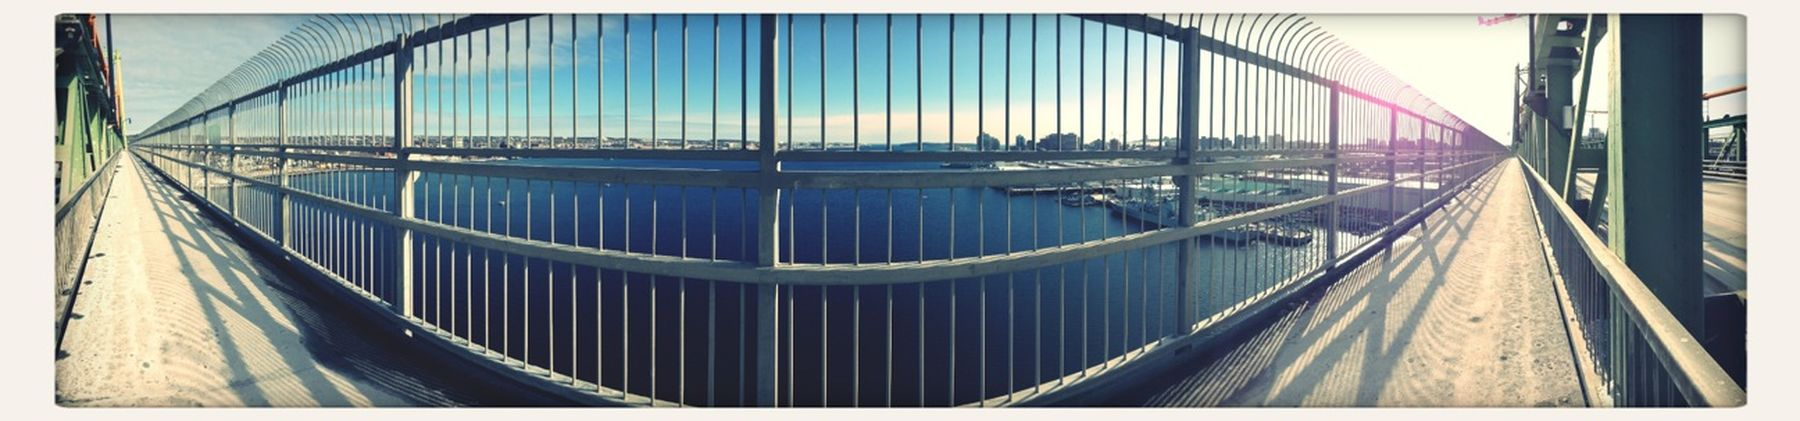 iPhone pano from the bridge.